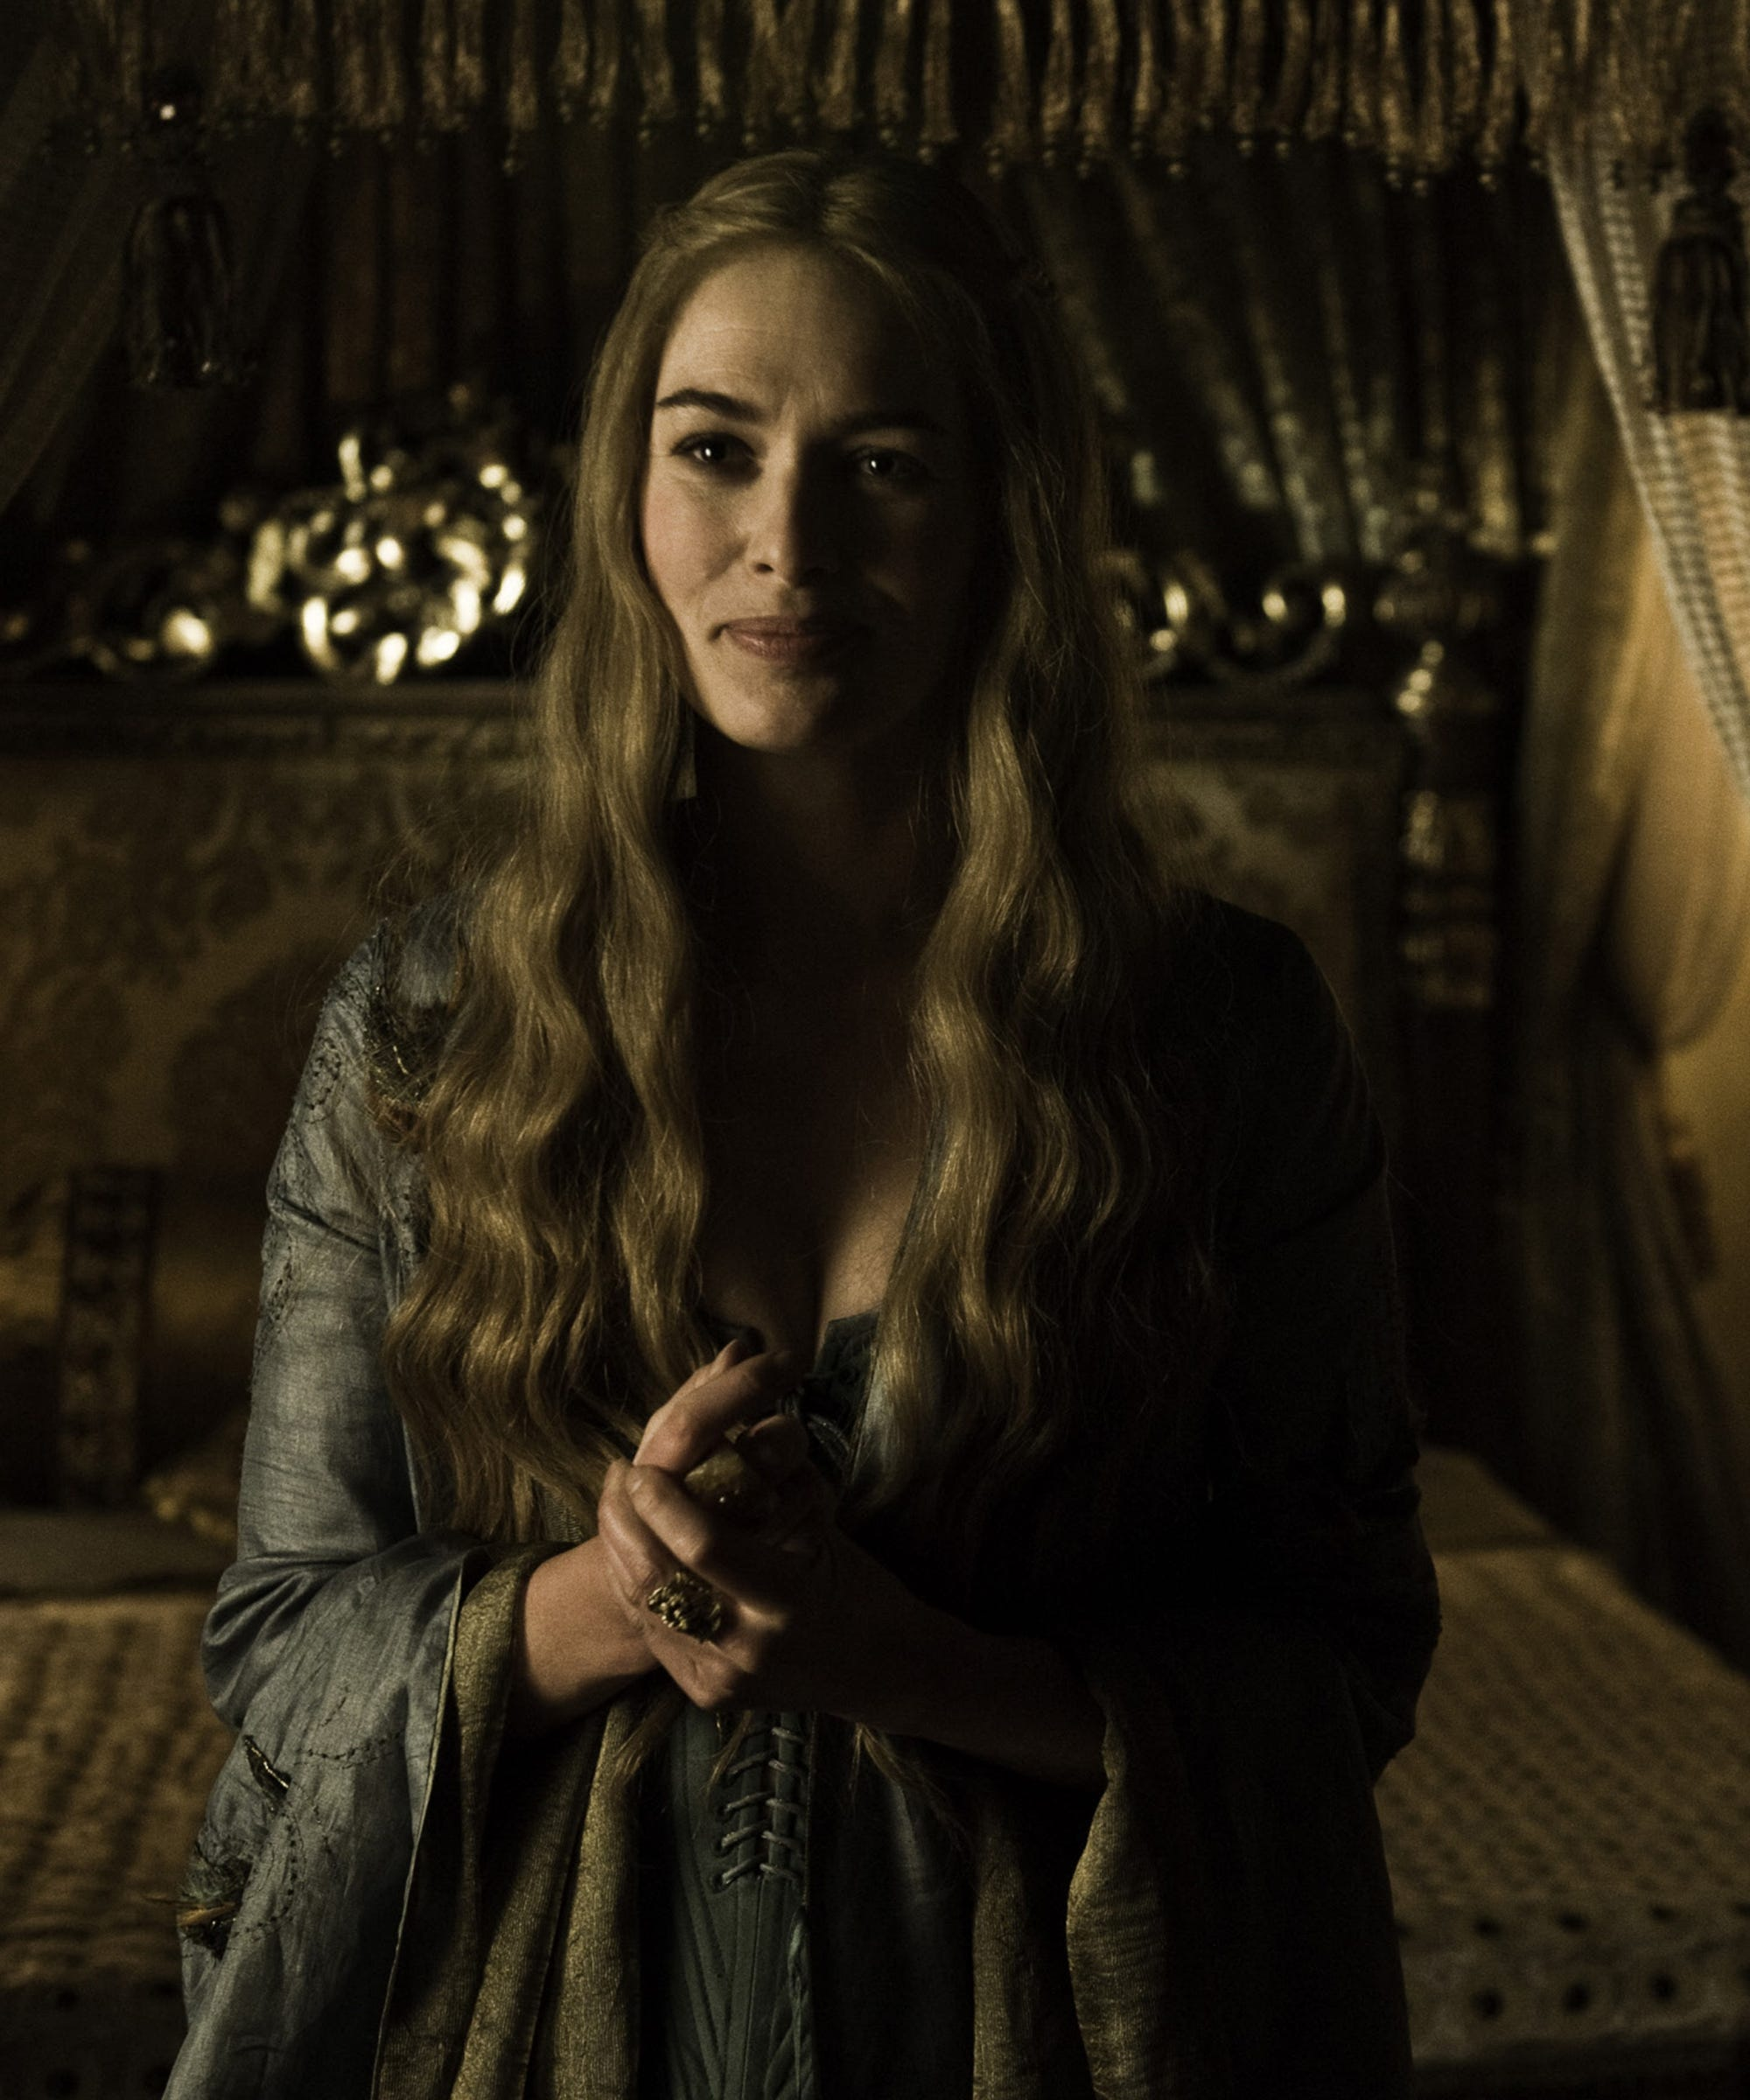 Photos Of GOT Characters Changes, First Episode To Now